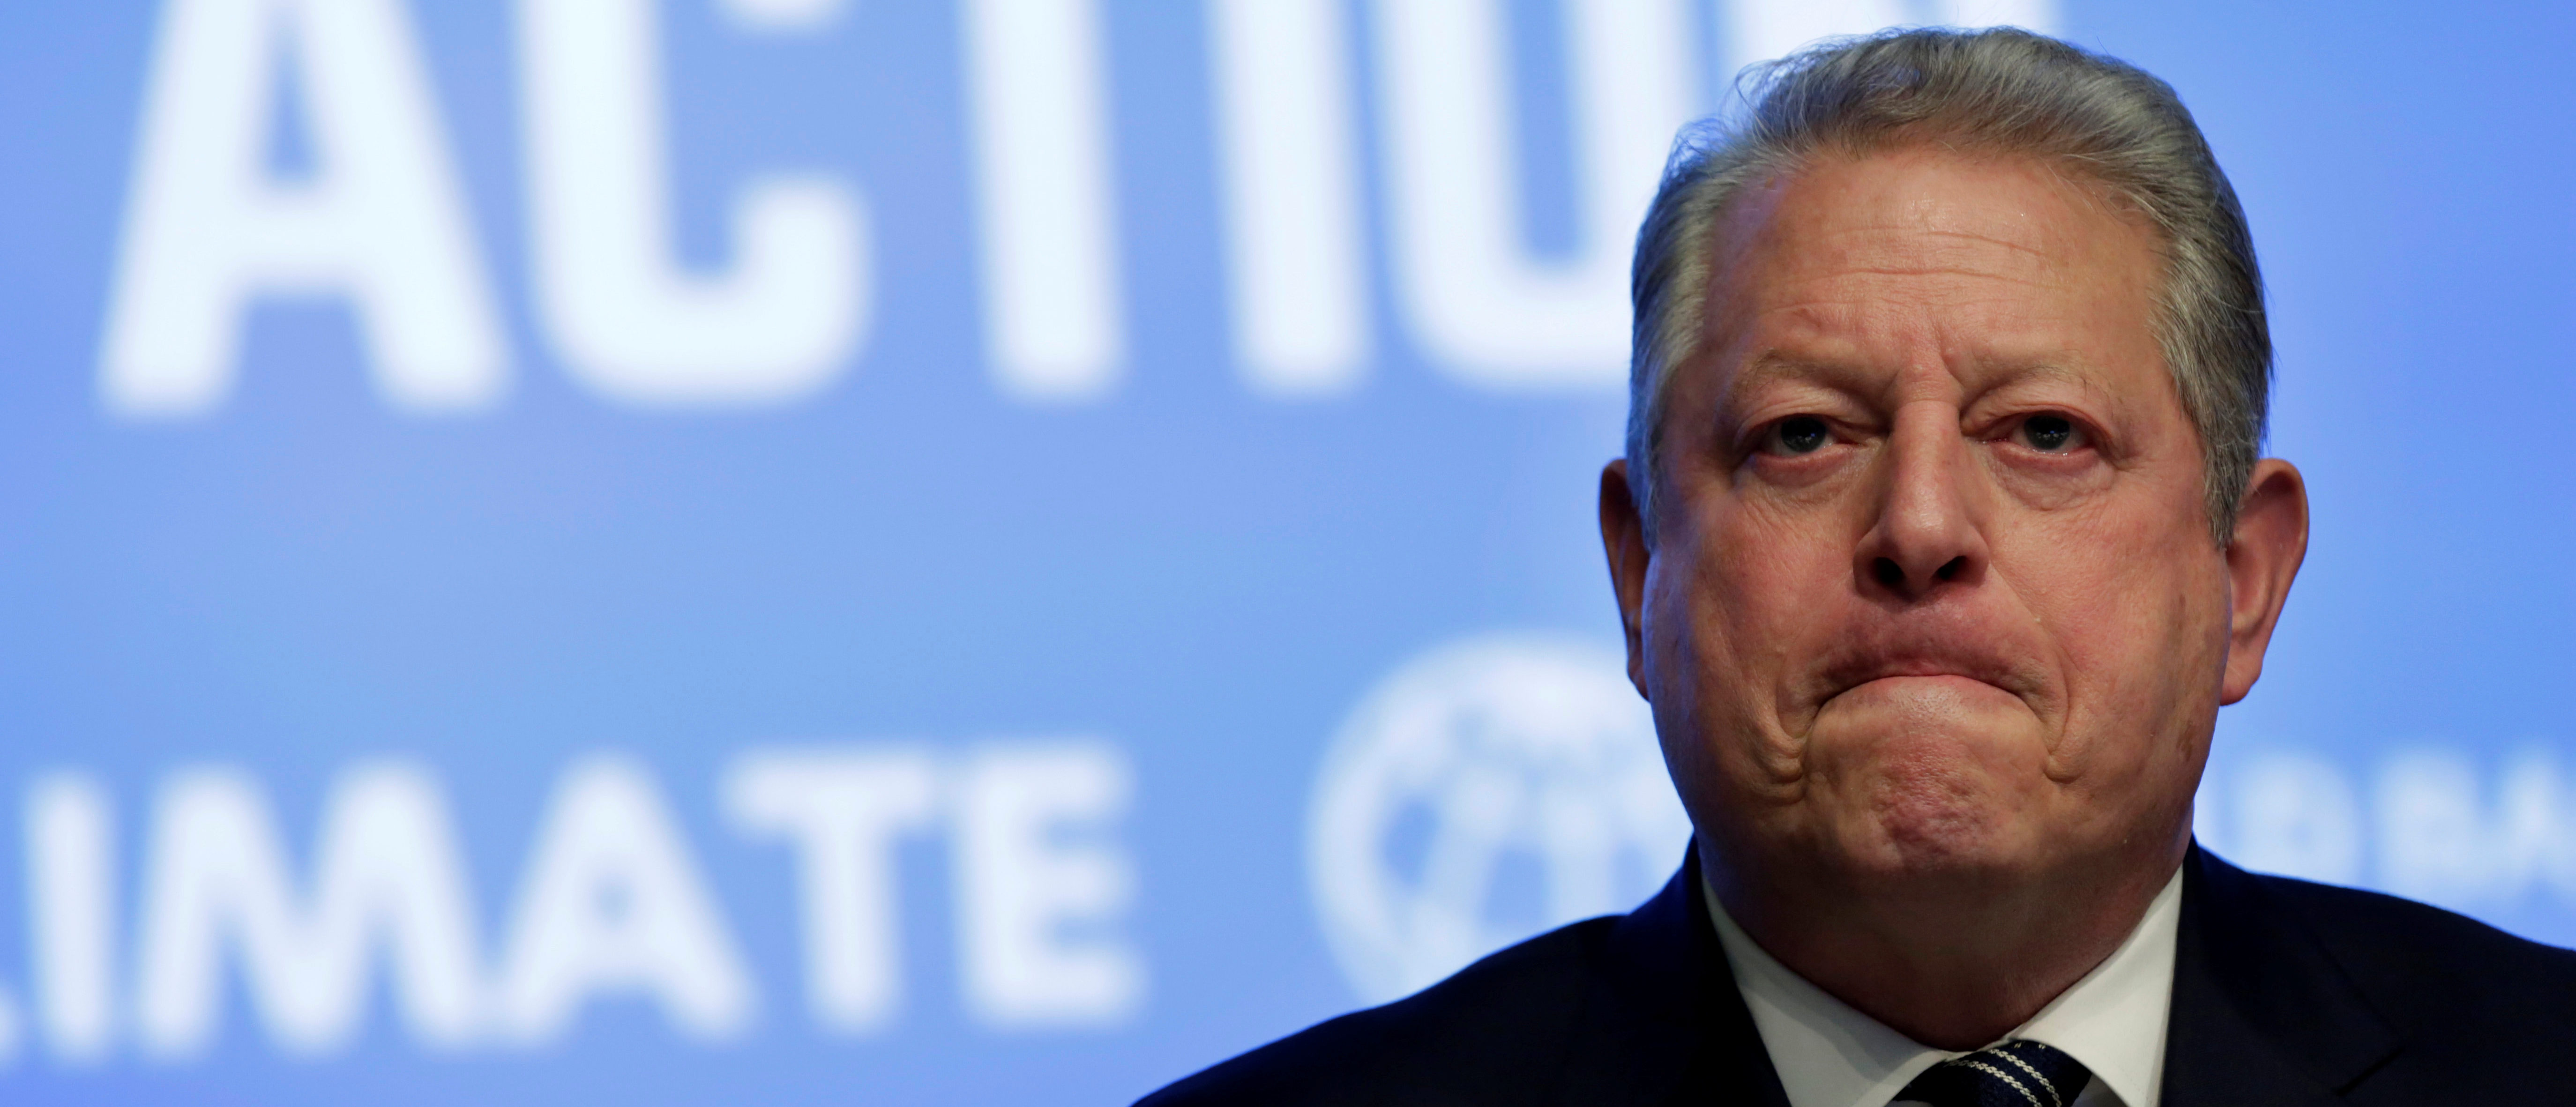 Former U.S. Vice President Al Gore attends Unlocking Financing for Climate Action